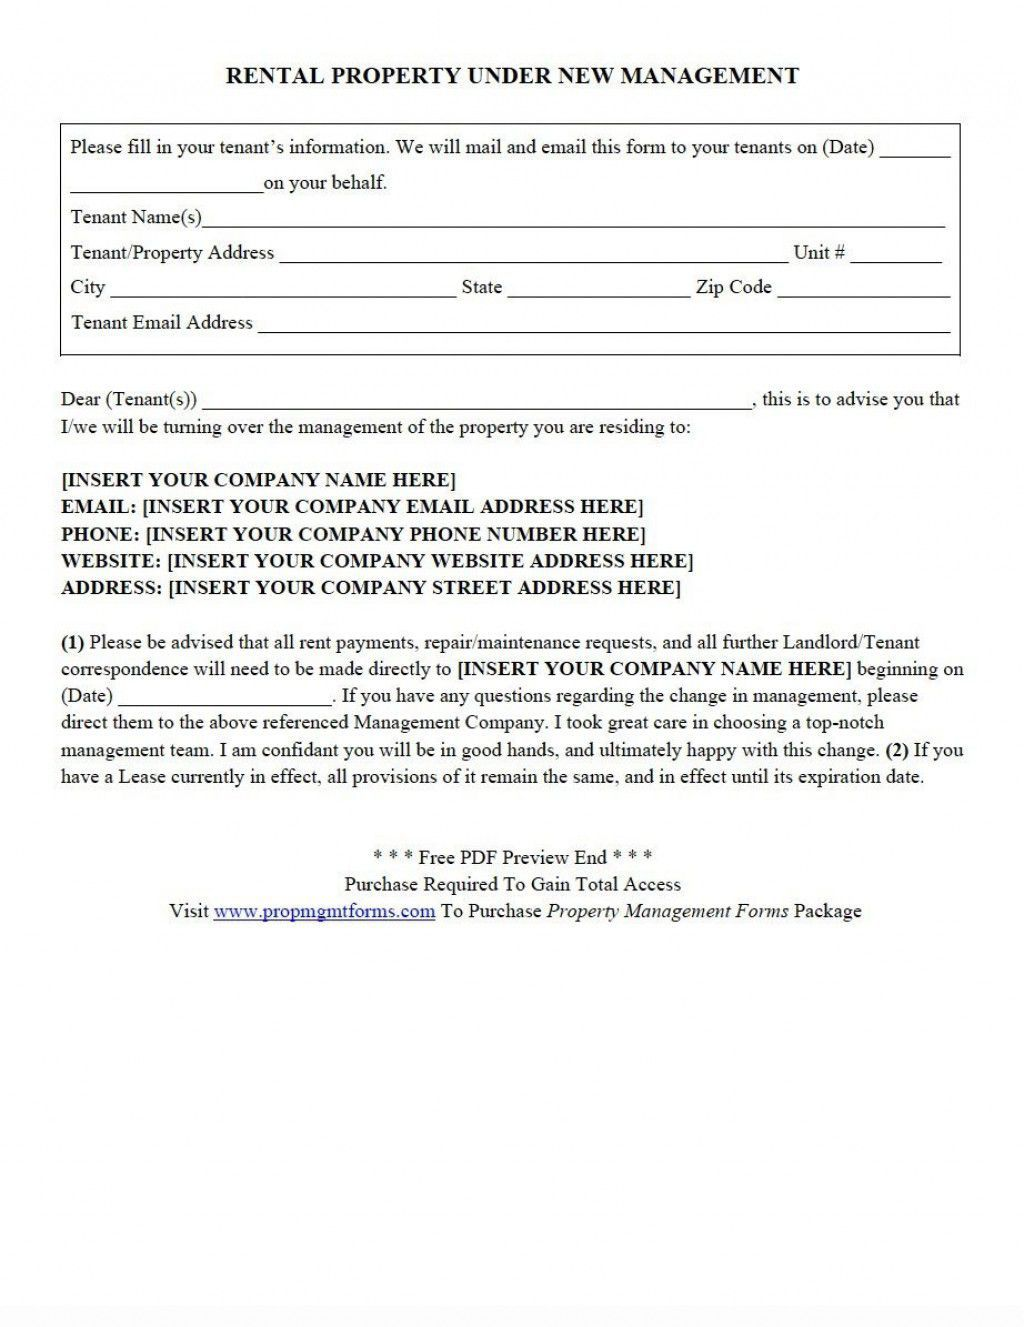 006 Top Property Management Contract Template Ontario Concept Full